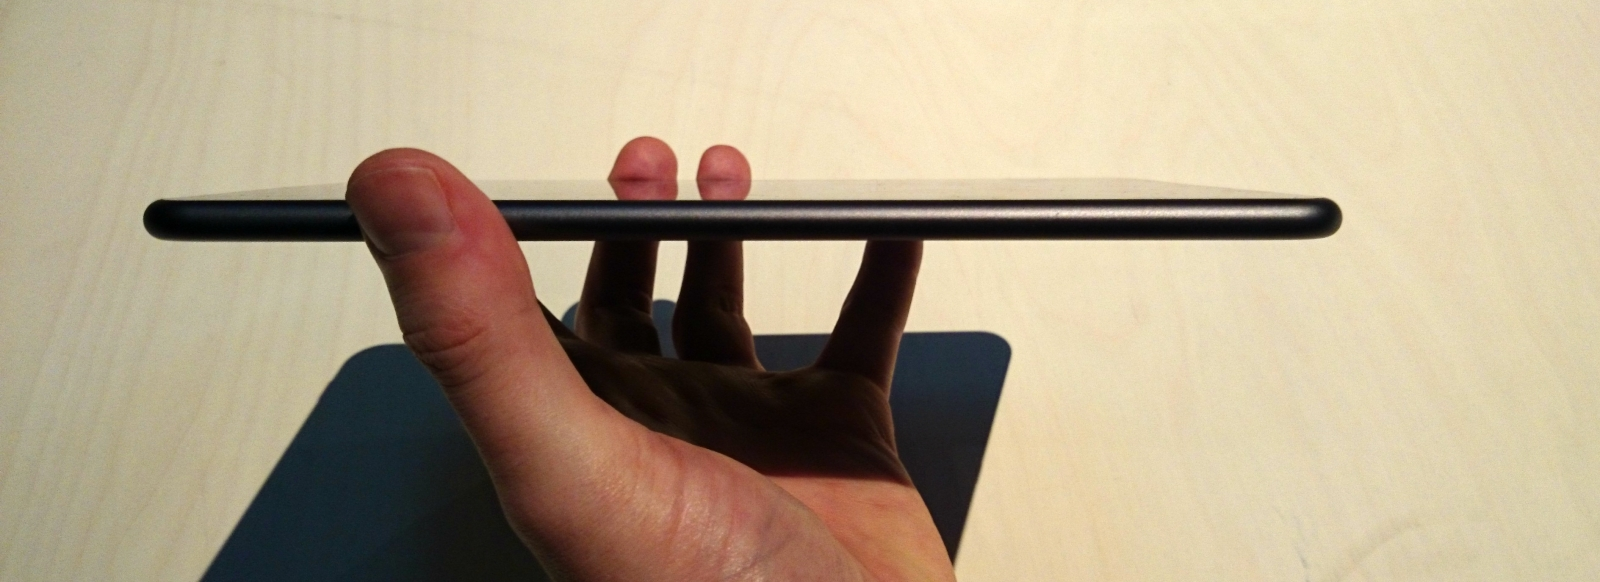 nokia n1 tablet review